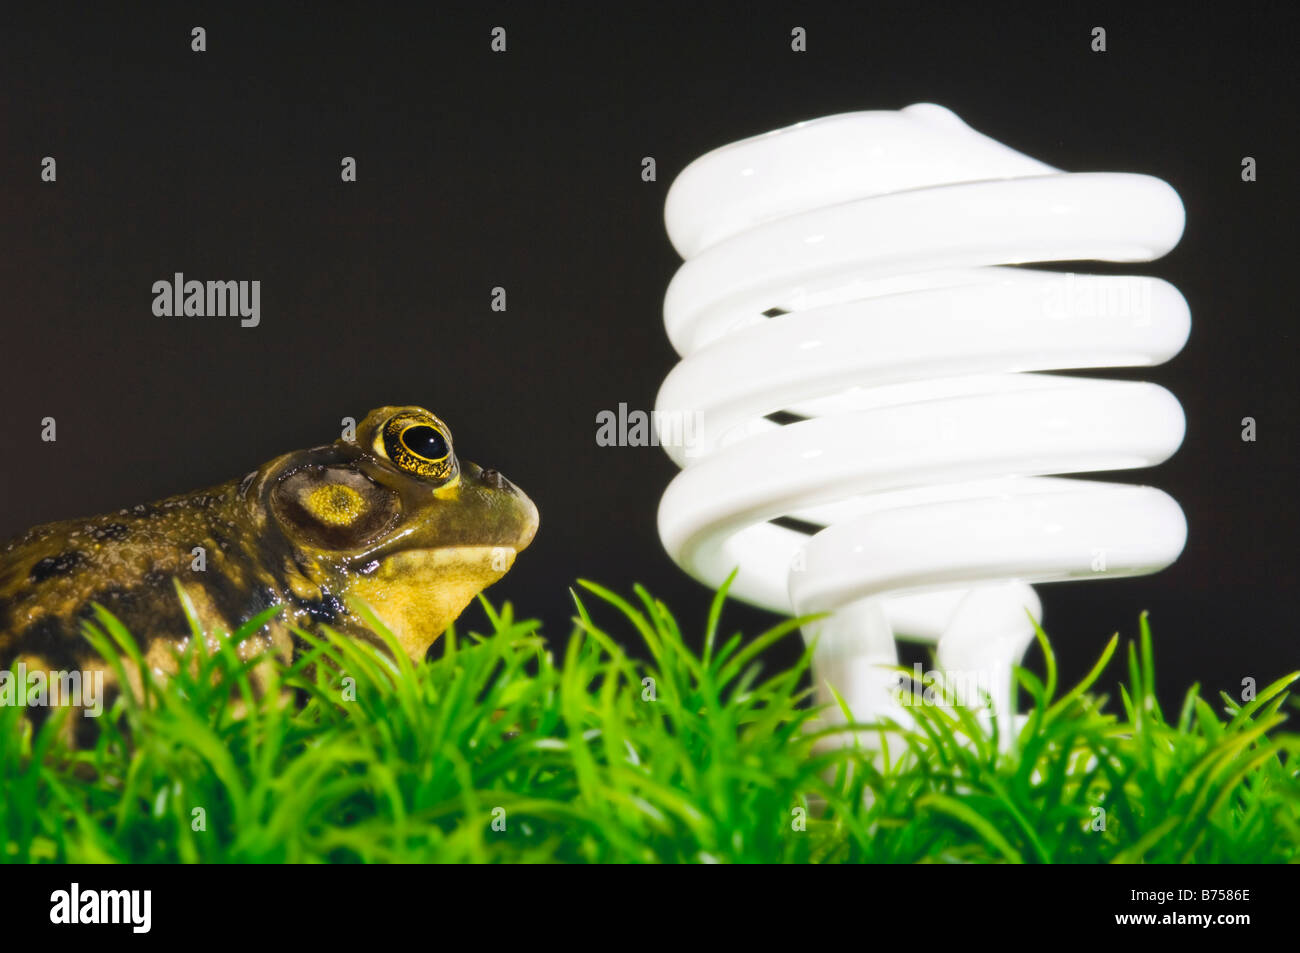 Energy-saving light bulb inspected by green frog, Halifax, Canada - Stock Image